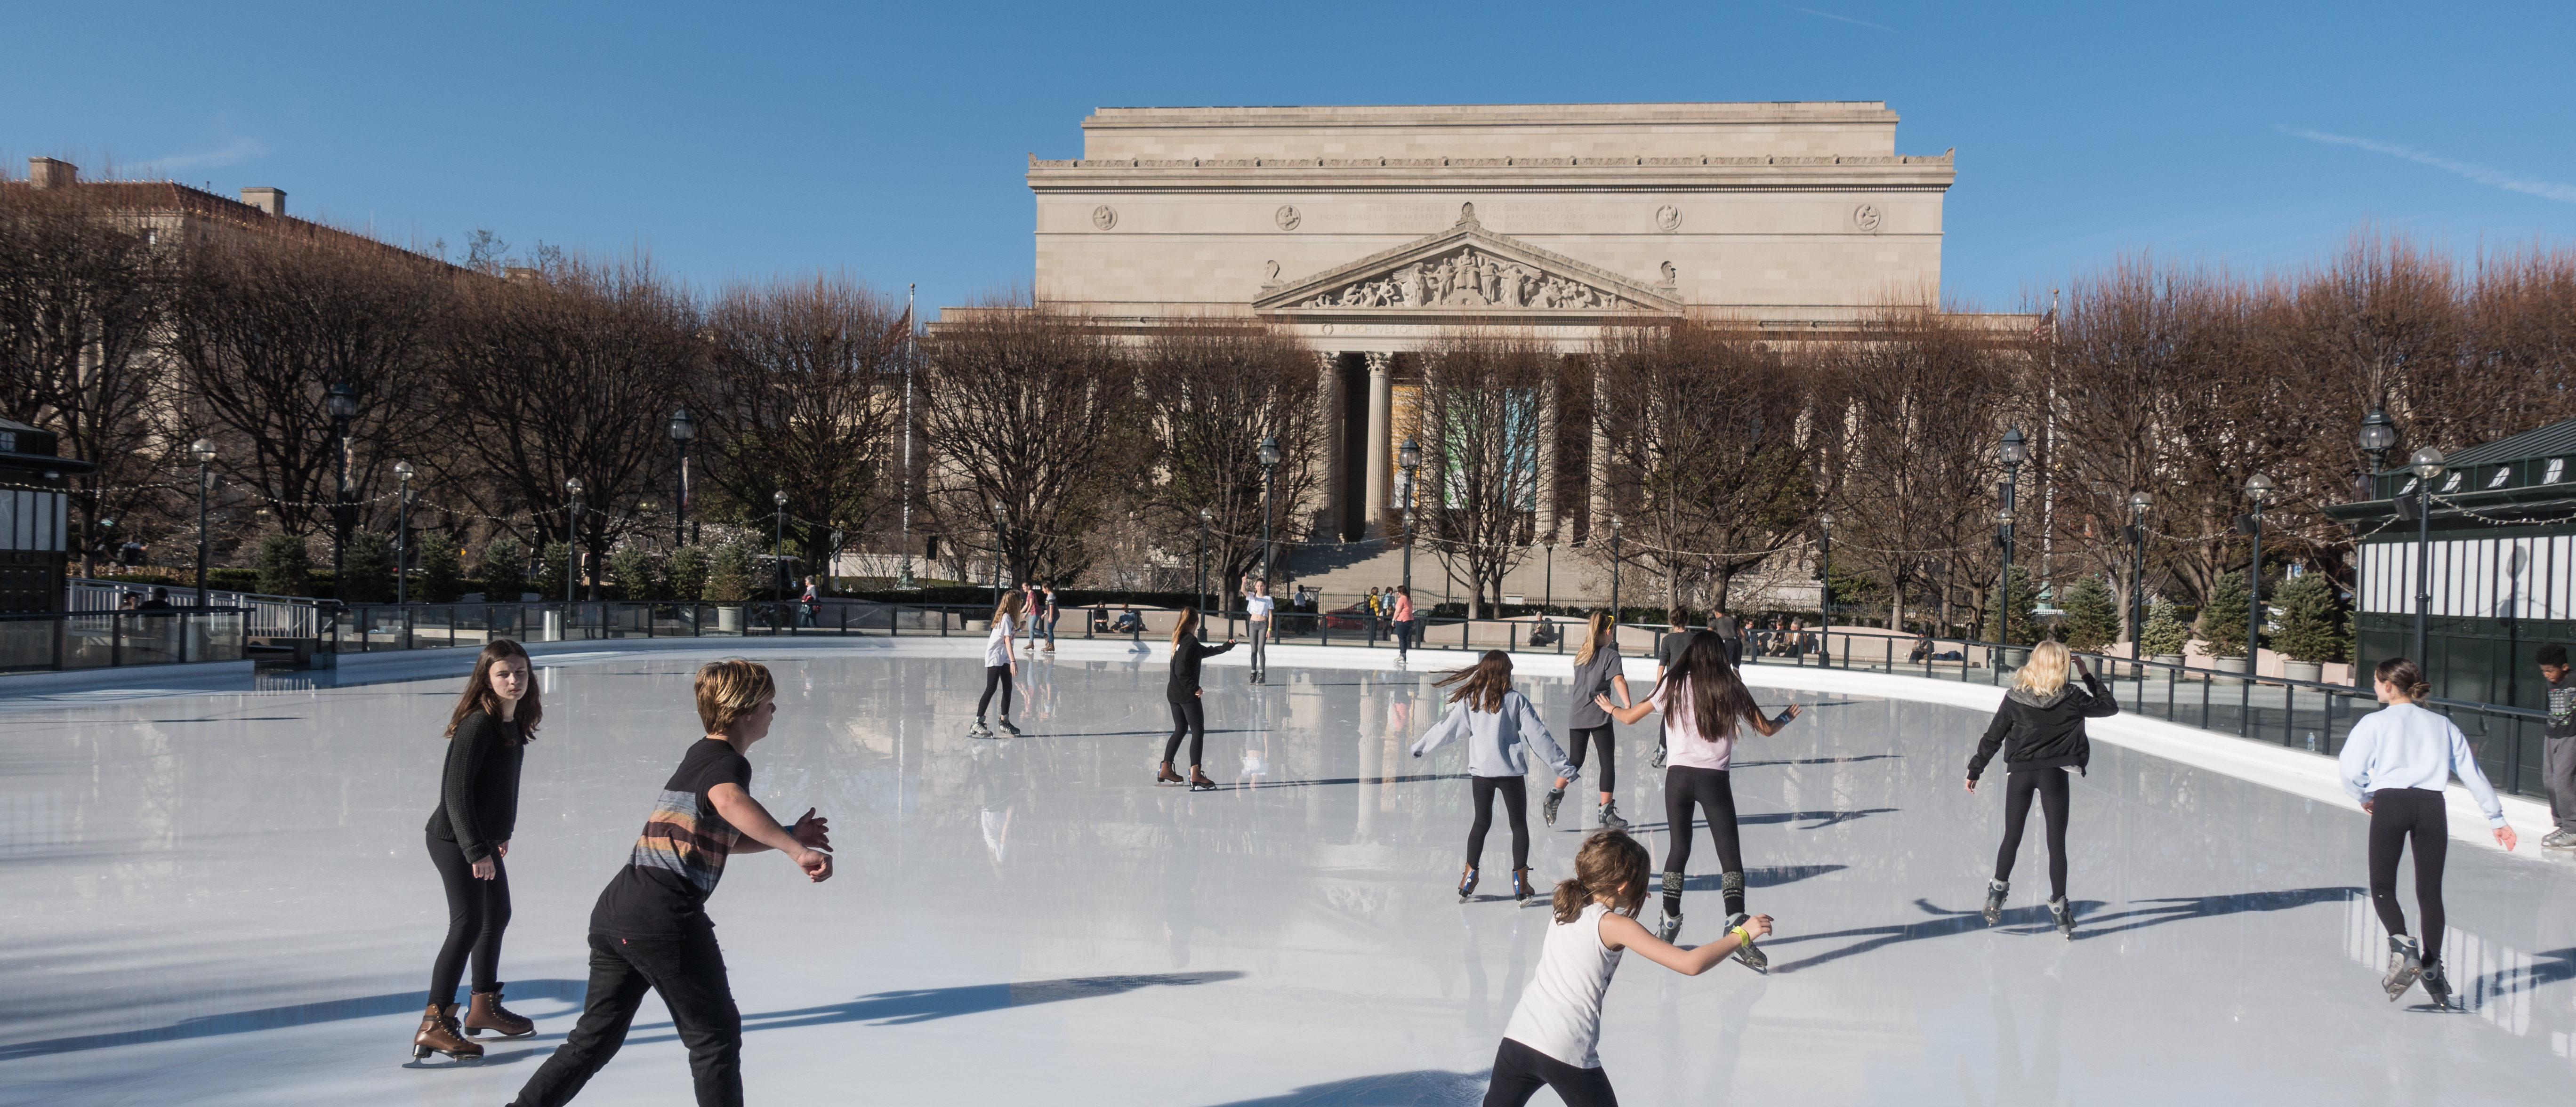 WASHINGTON DC - FEB 23, 2017: Ice skaters dressed for spring skate under 74 degree (F) sun in unseasonably warm winter weather at National Gallery of Art Sculpture Garden Ice Rink on the National Mall. Source: bakdc/Shutterstock